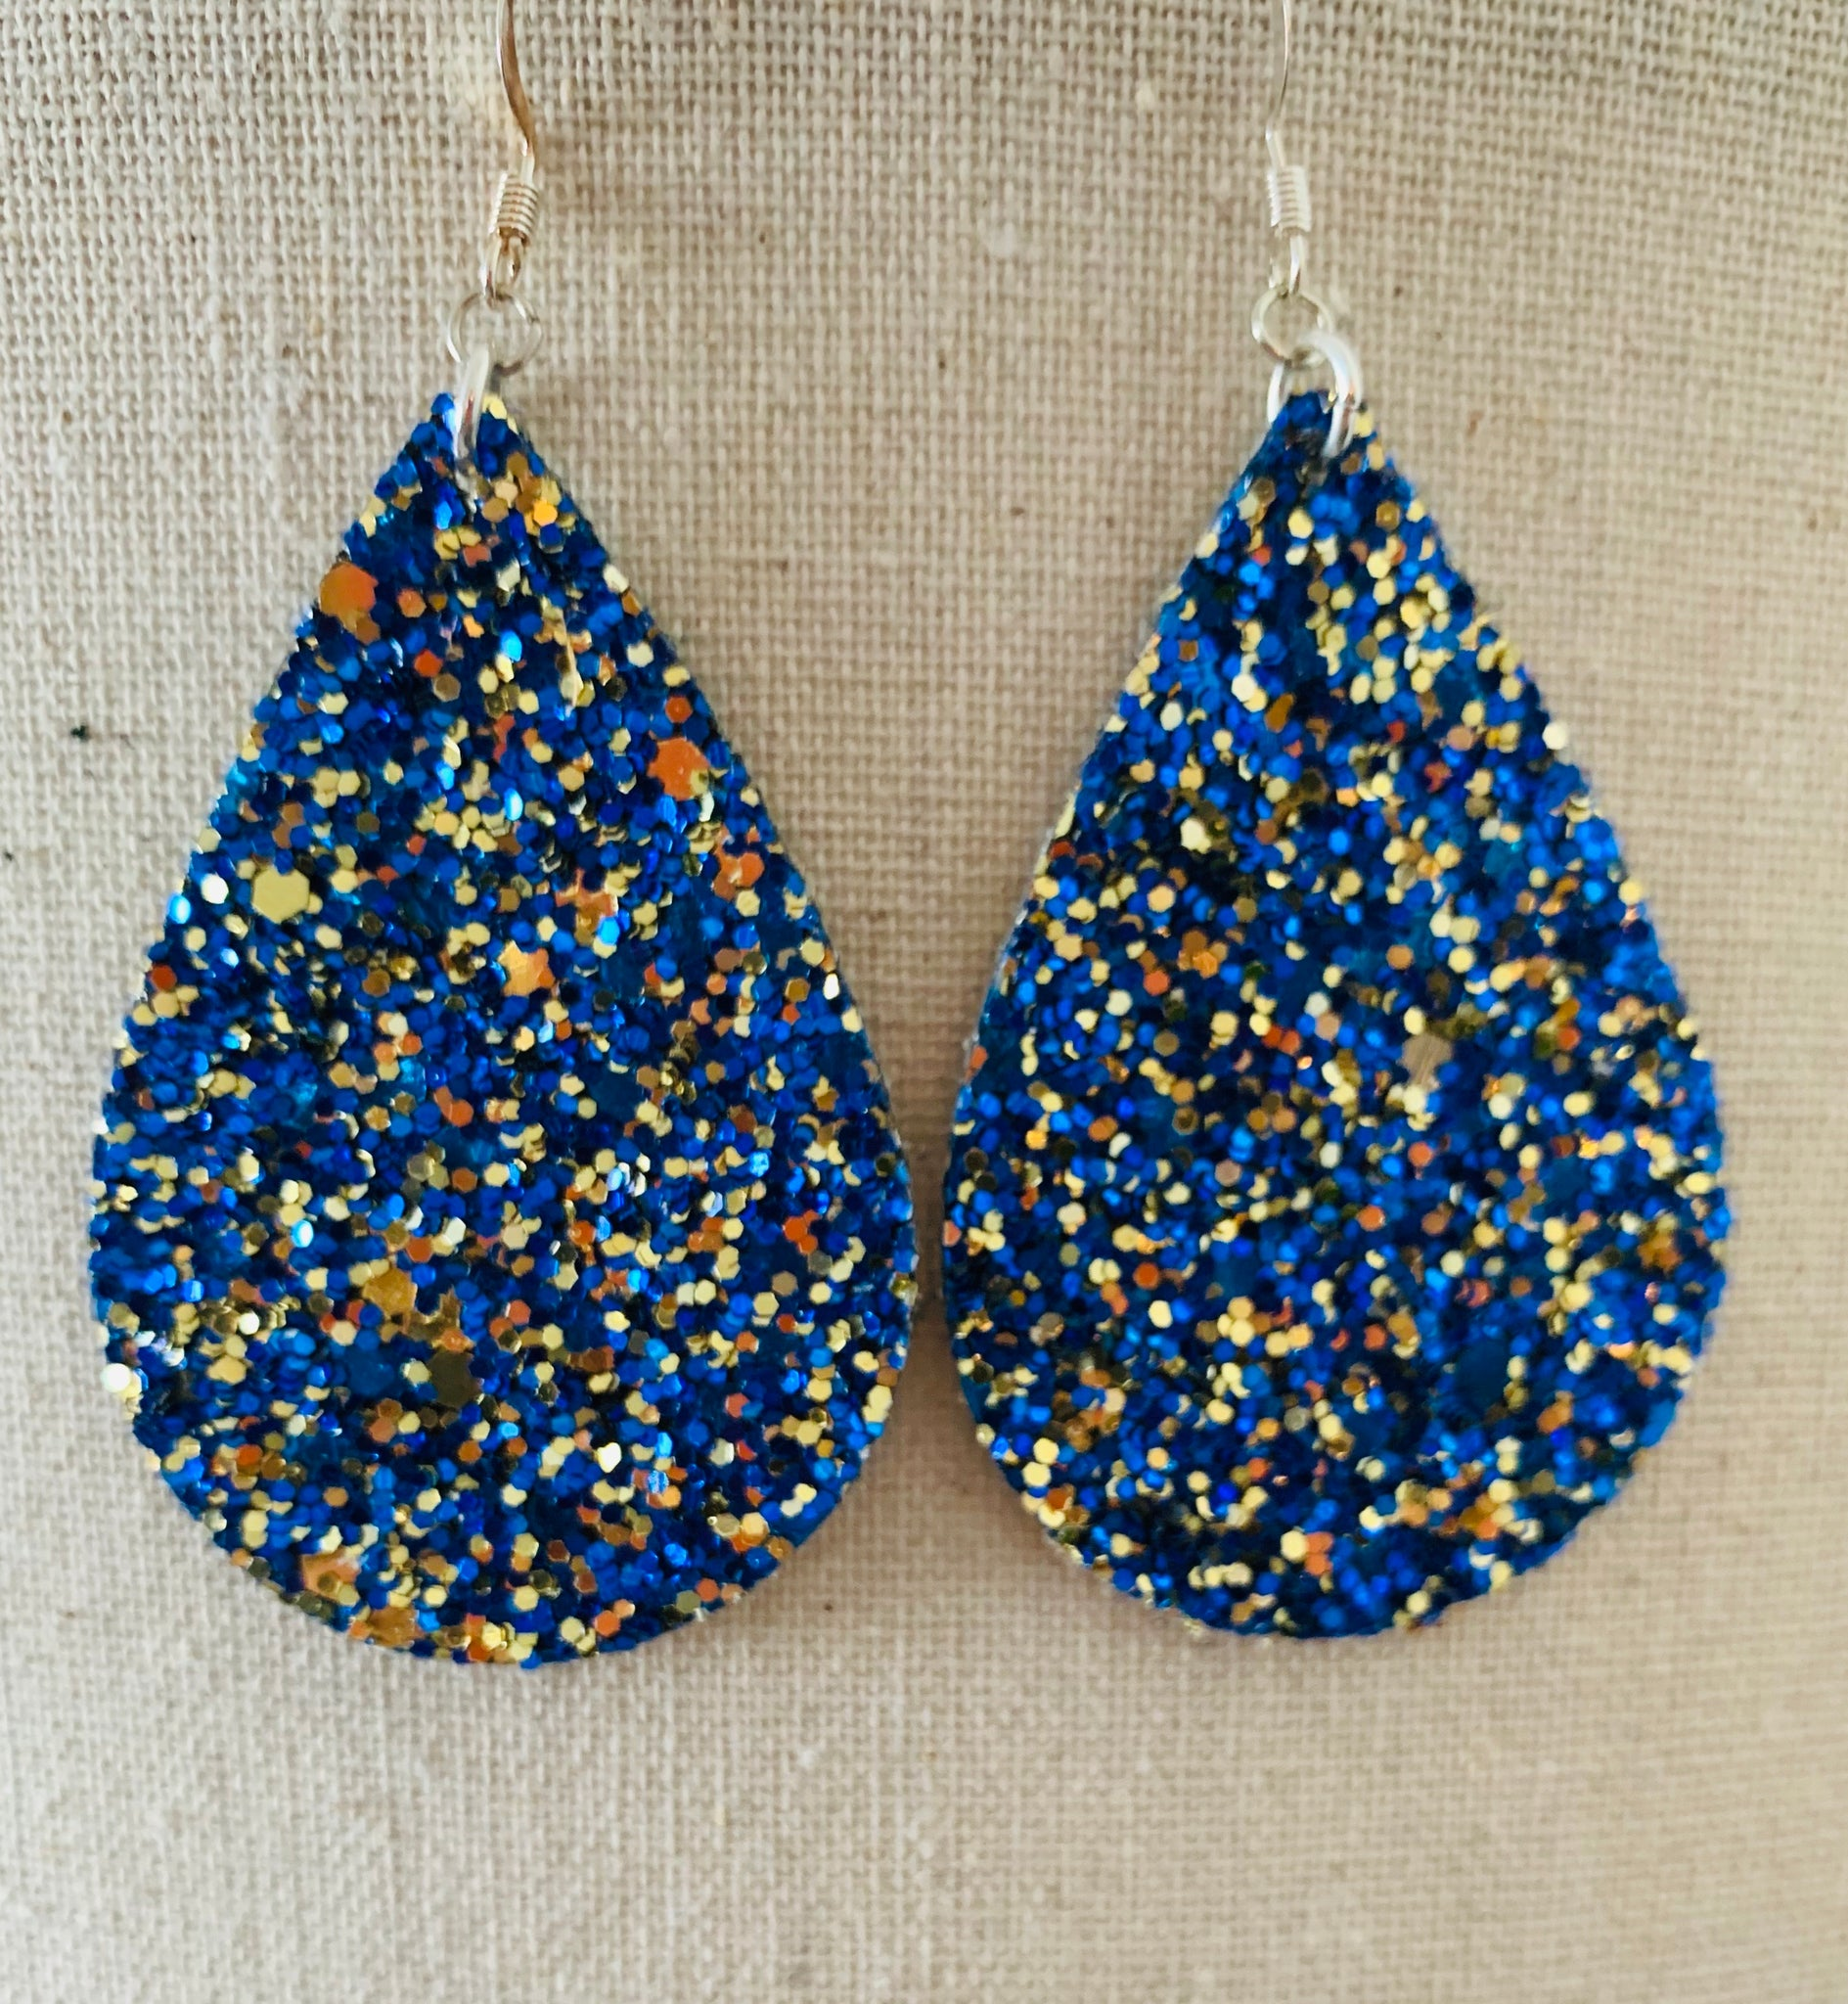 copyblue-and-gold-multi-colored-chunky-glitter-vegan-leather-earrings